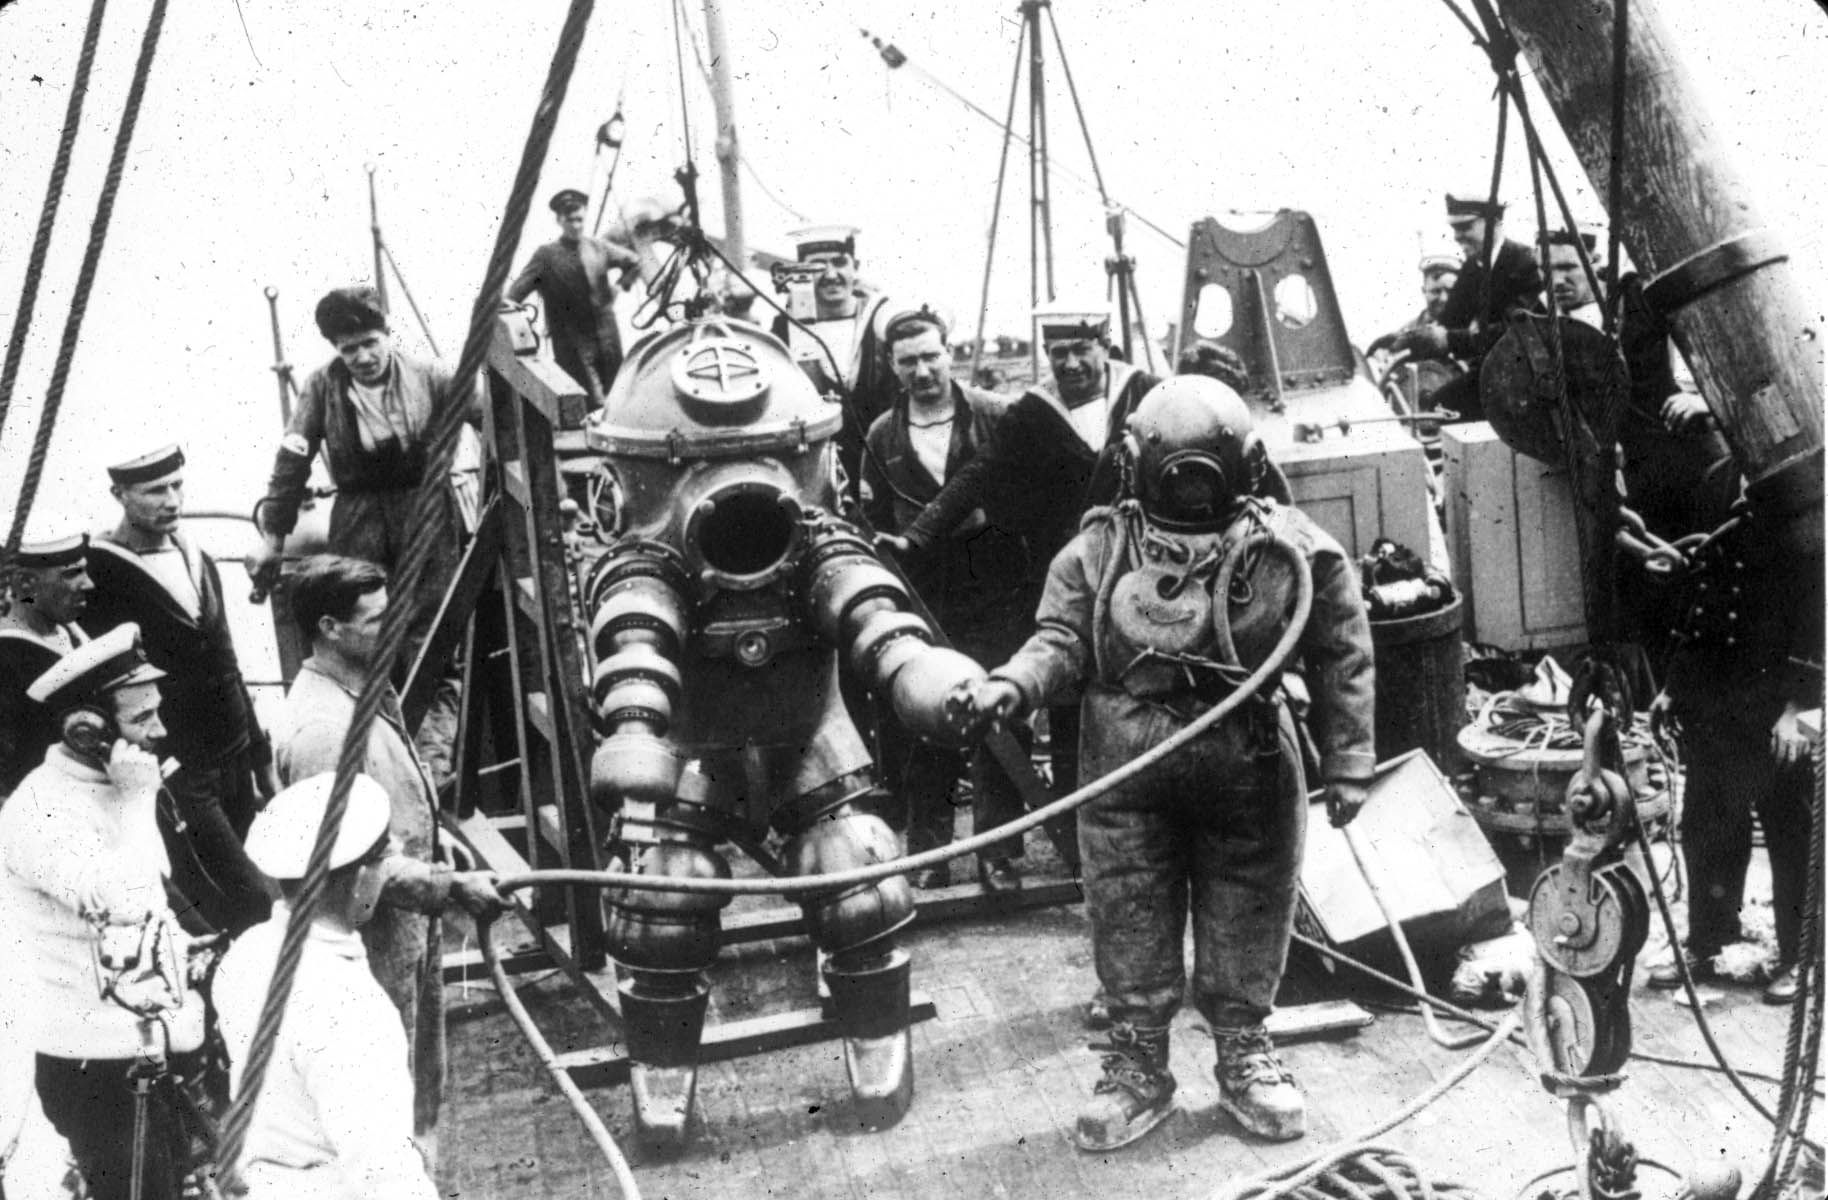 Rms lusitania wreck rms lusitania wreck quotes - Two Divers One Wearing A 1 Atmosphere Diving Suit And The Other Standard Diving Dress Preparing To Explore The Wreck Of The Rms Lusitania 1935